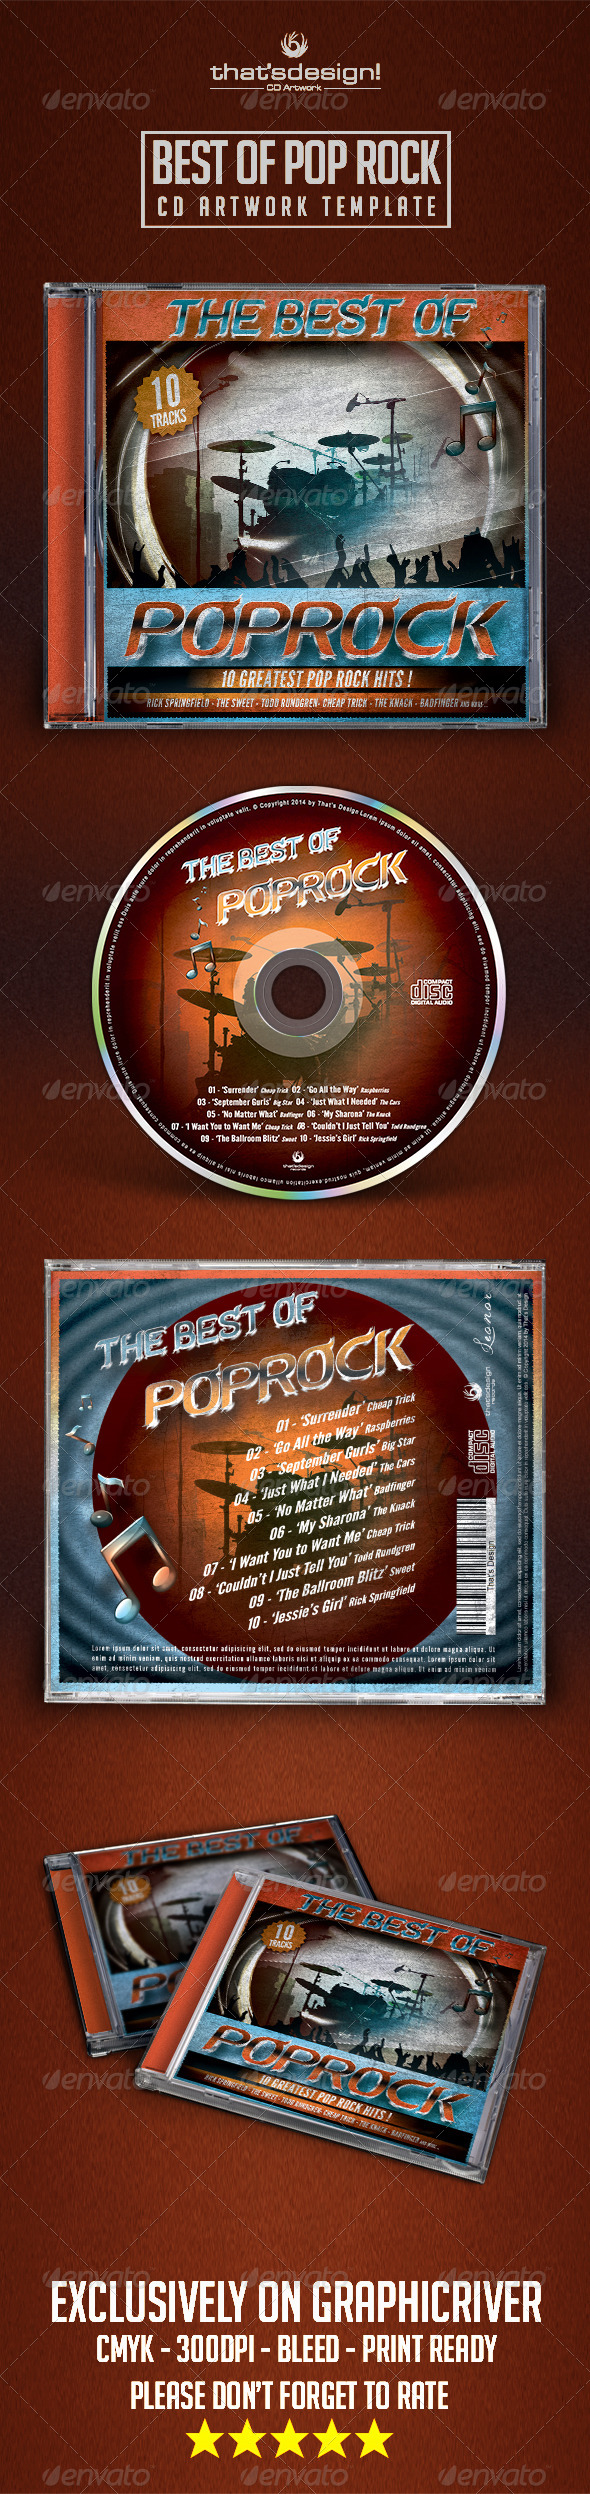 GraphicRiver Best of Pop Rock CD Artwork Template 8038647